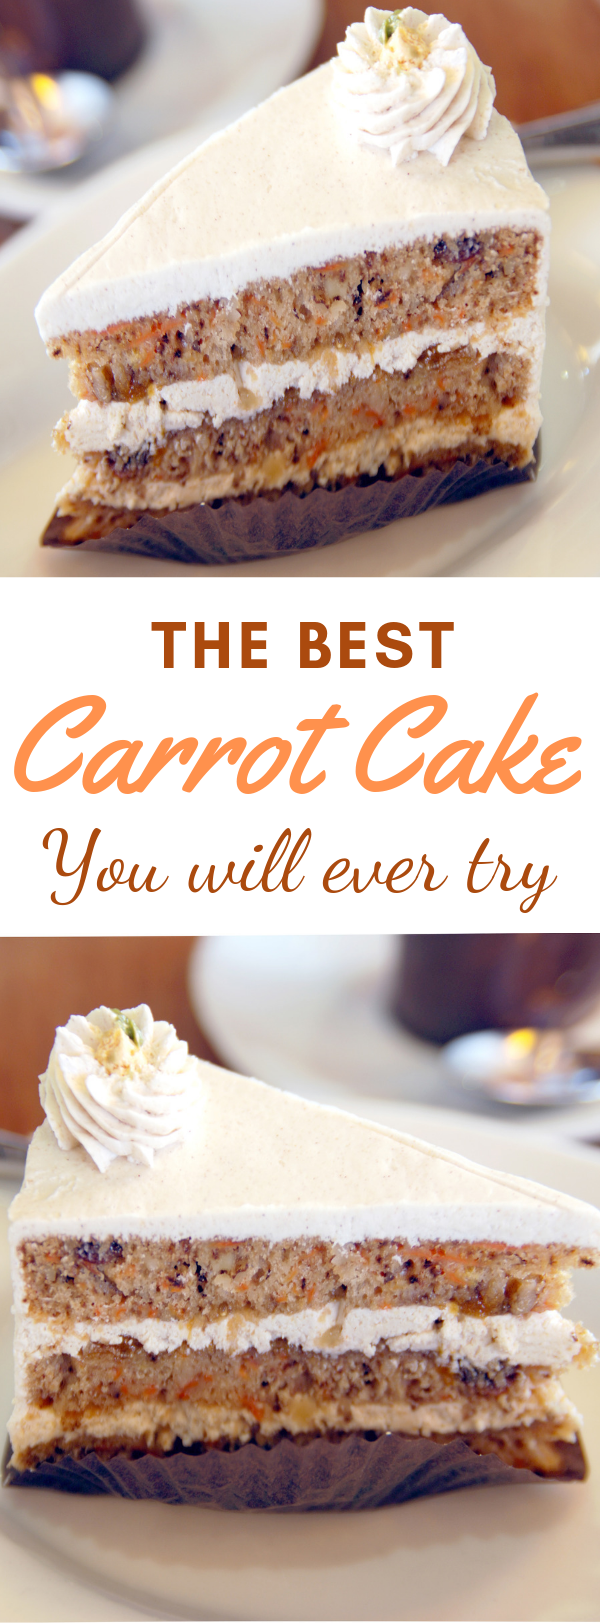 This classic carrot cake recipe is perfectly-spiced, moist and made with lots of fresh carrots and a cream cheese frosting. #carrot #cake #dessert  #creamcheese #frosting #spring #vegetarian